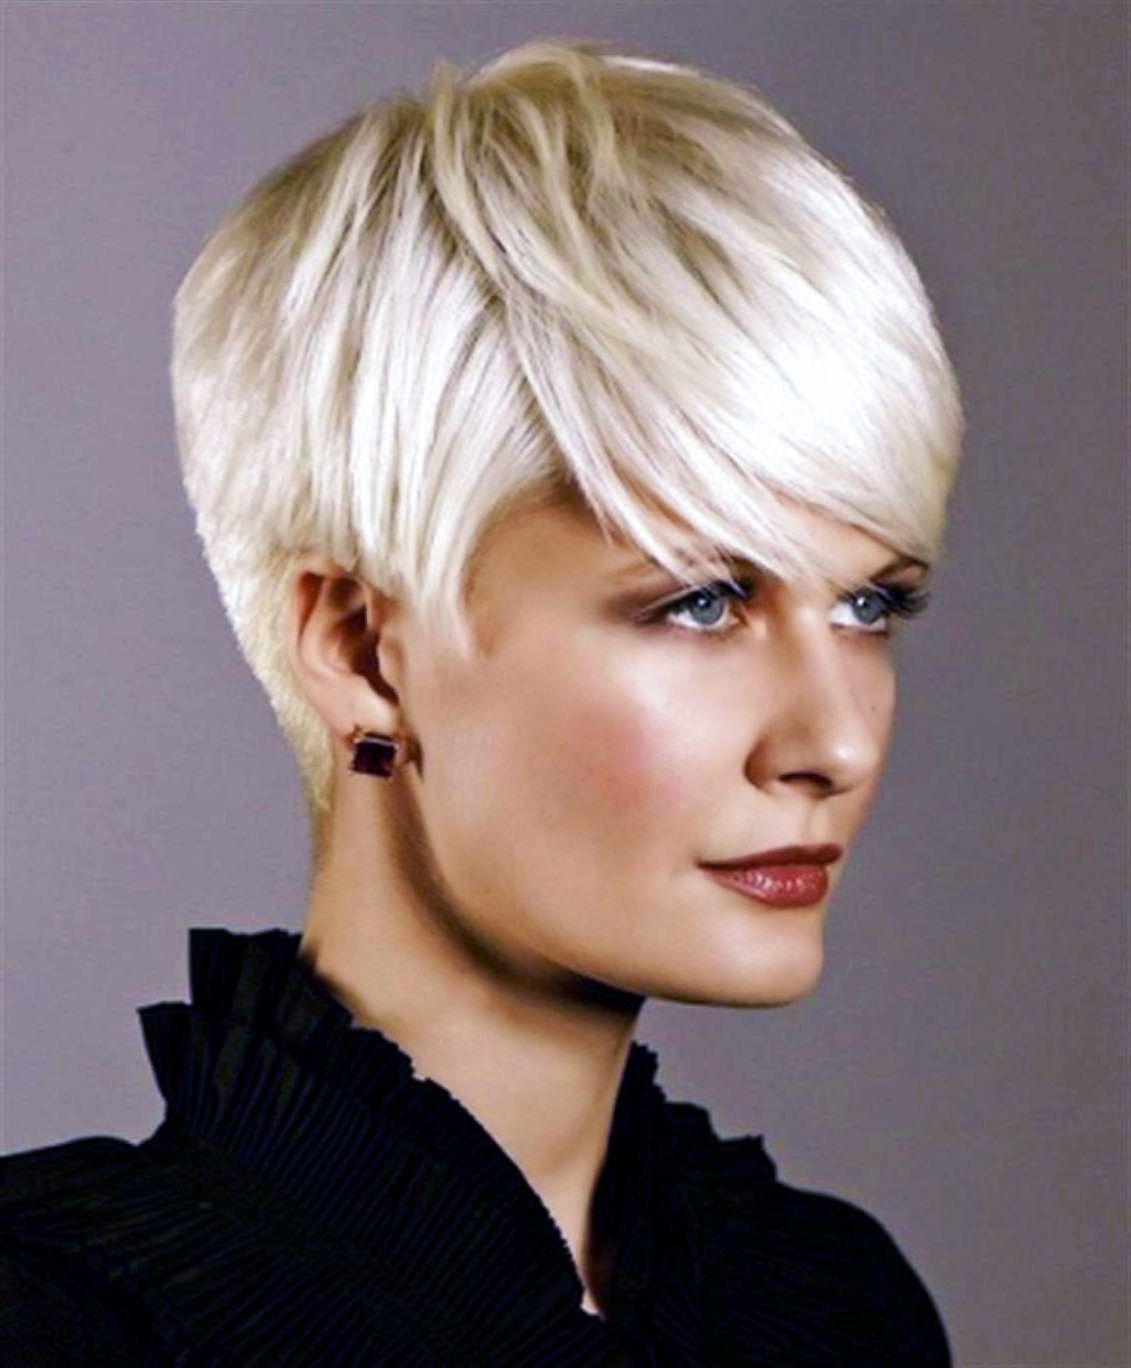 Korte Kapsels Dames 50 Plus Korte Kapsels Dames 50 Plus In 2020 Short Hair Styles Hairstyles For Thin Hair Short Cropped Hair